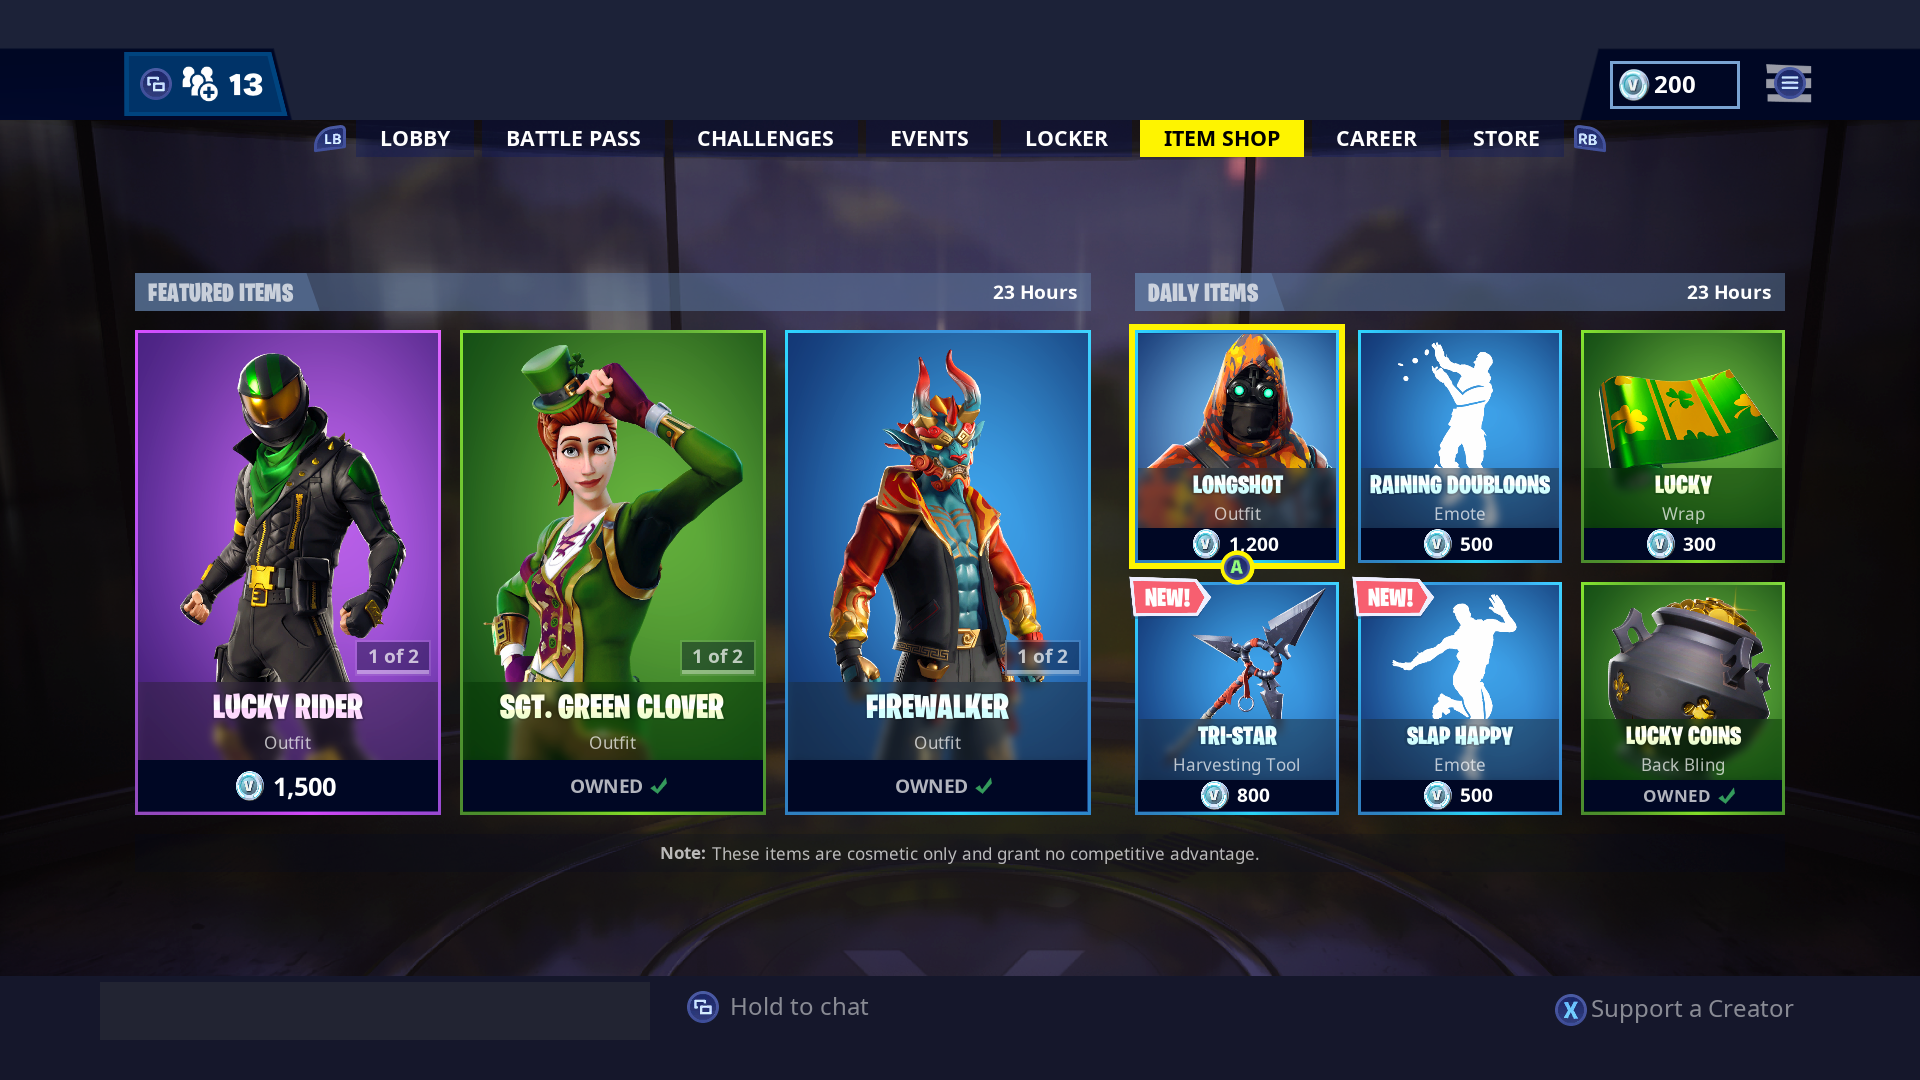 April 17 2019 Fortnite Item Shop | Fortnite Free Website